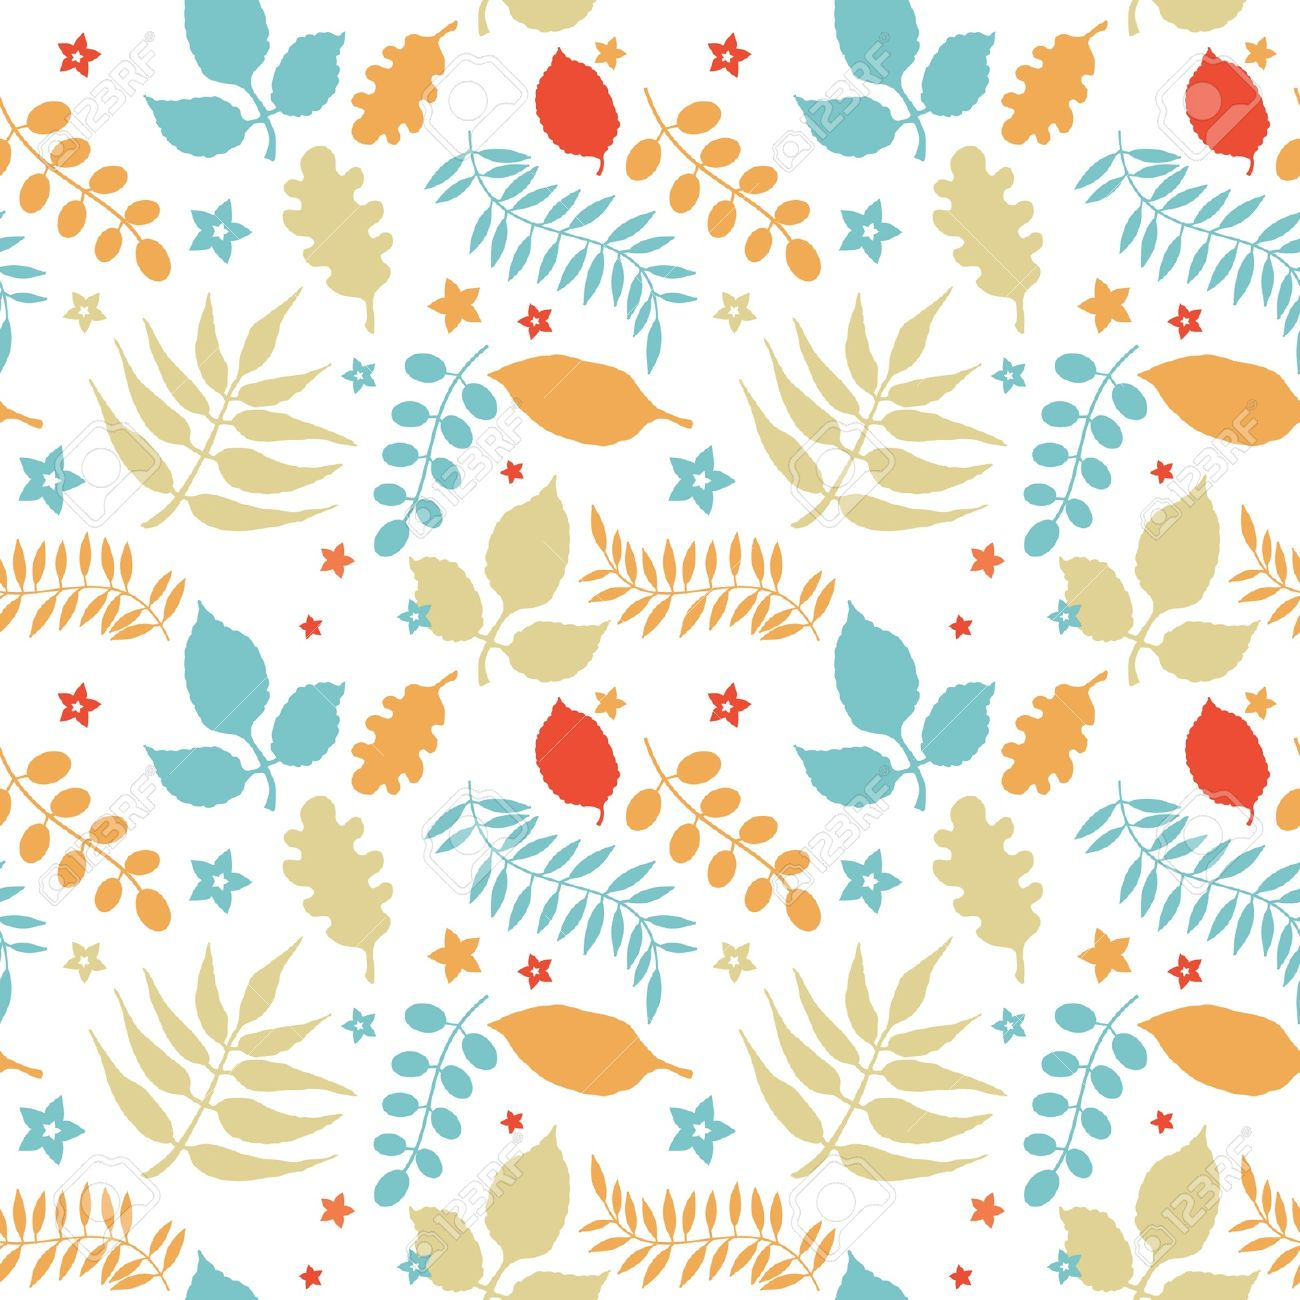 Colorful floral seamless pattern decorative leaves at white background Stock Vector - 11663016